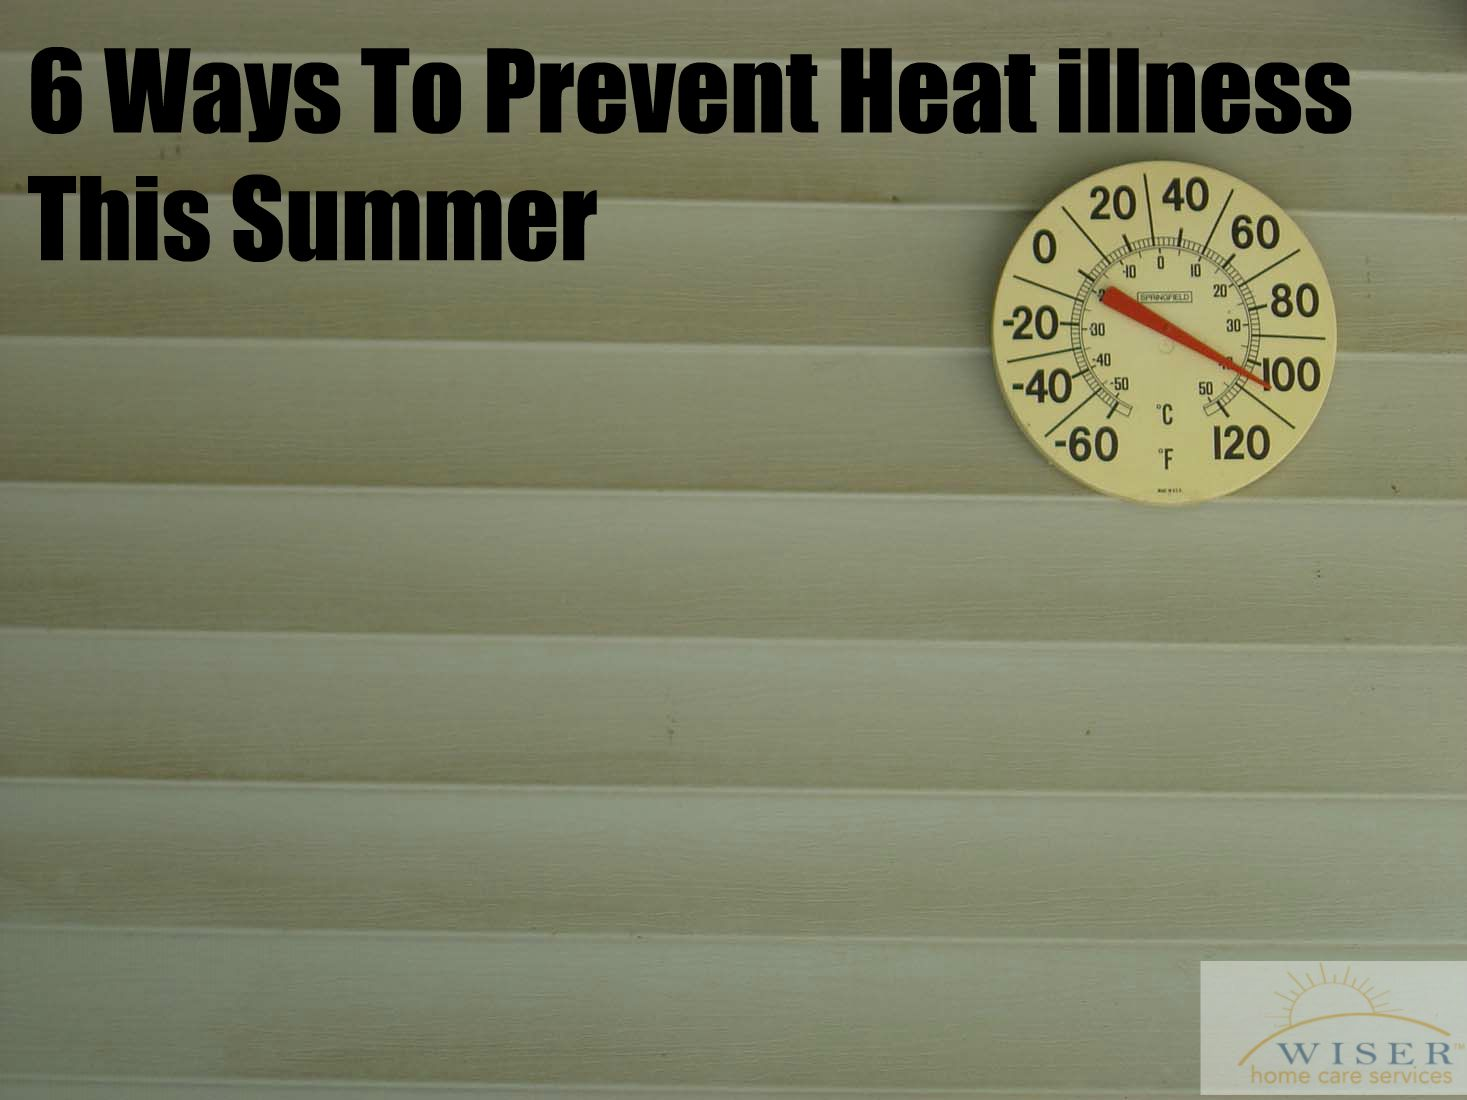 While the consistently warm weather has made this a summer to remember, it has also increased the risk of heat illness. These 6 tips will keep you safe.